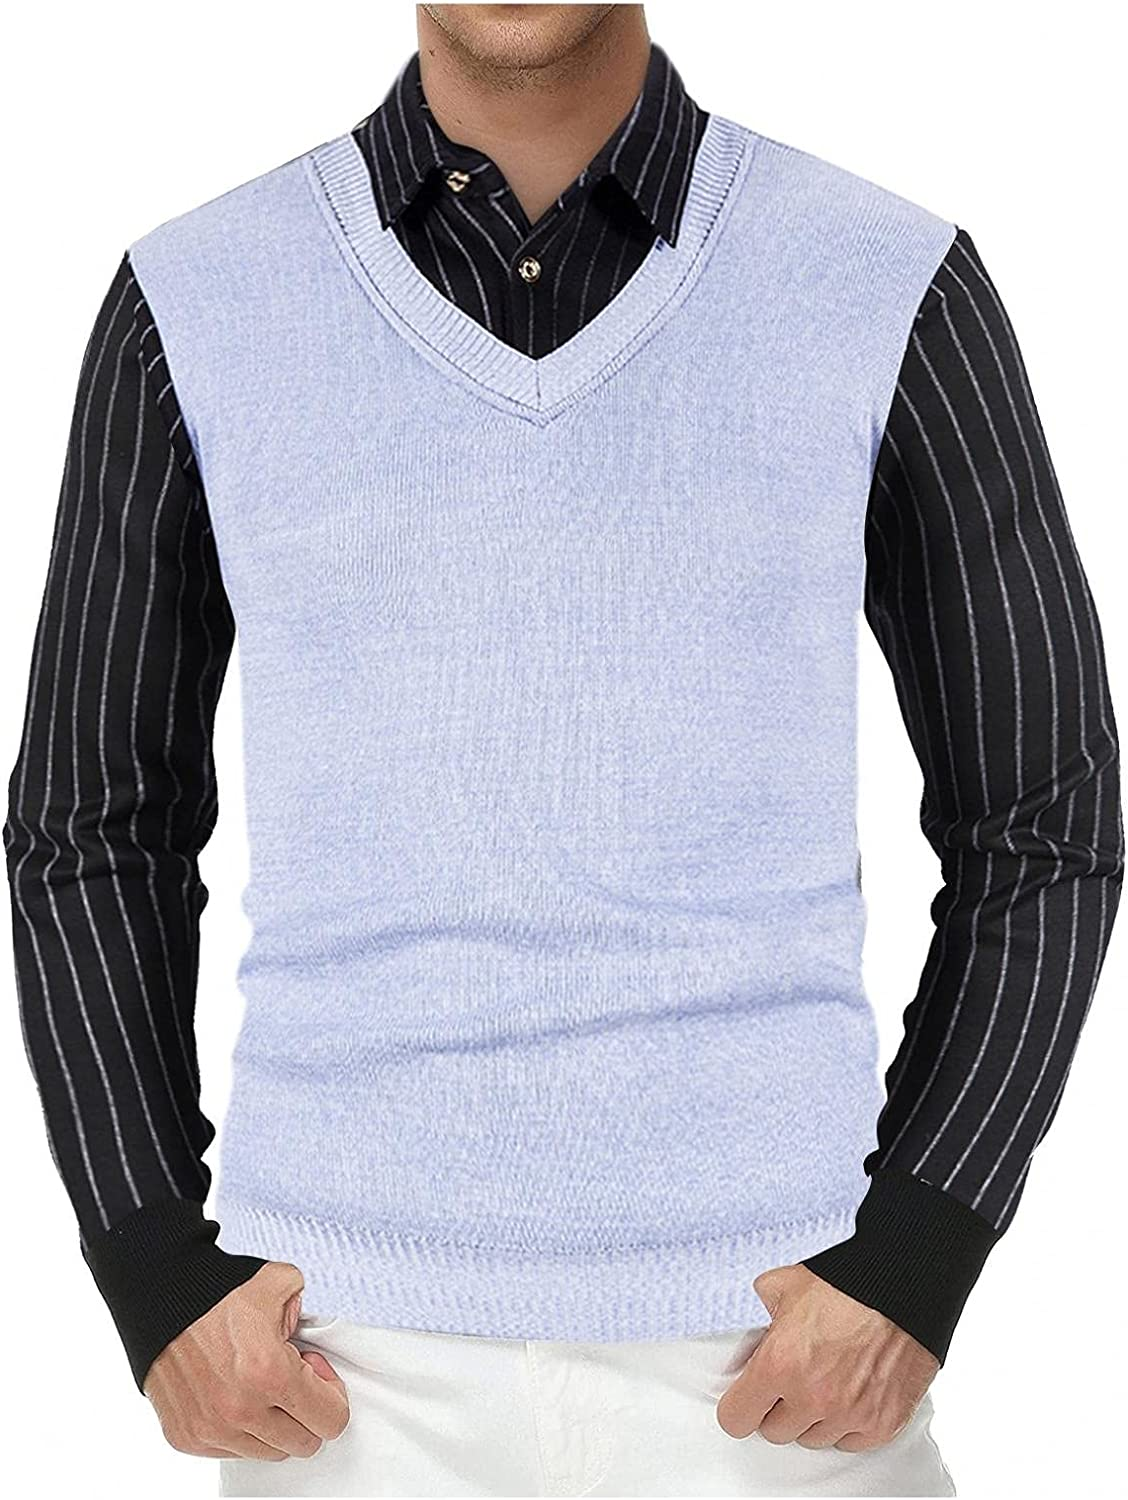 PHSHY Men's Cable Knit Sweater Vest Striped Business Fake Two Piece Shirt Button Down Lightweight Long Sleeves Knitwear